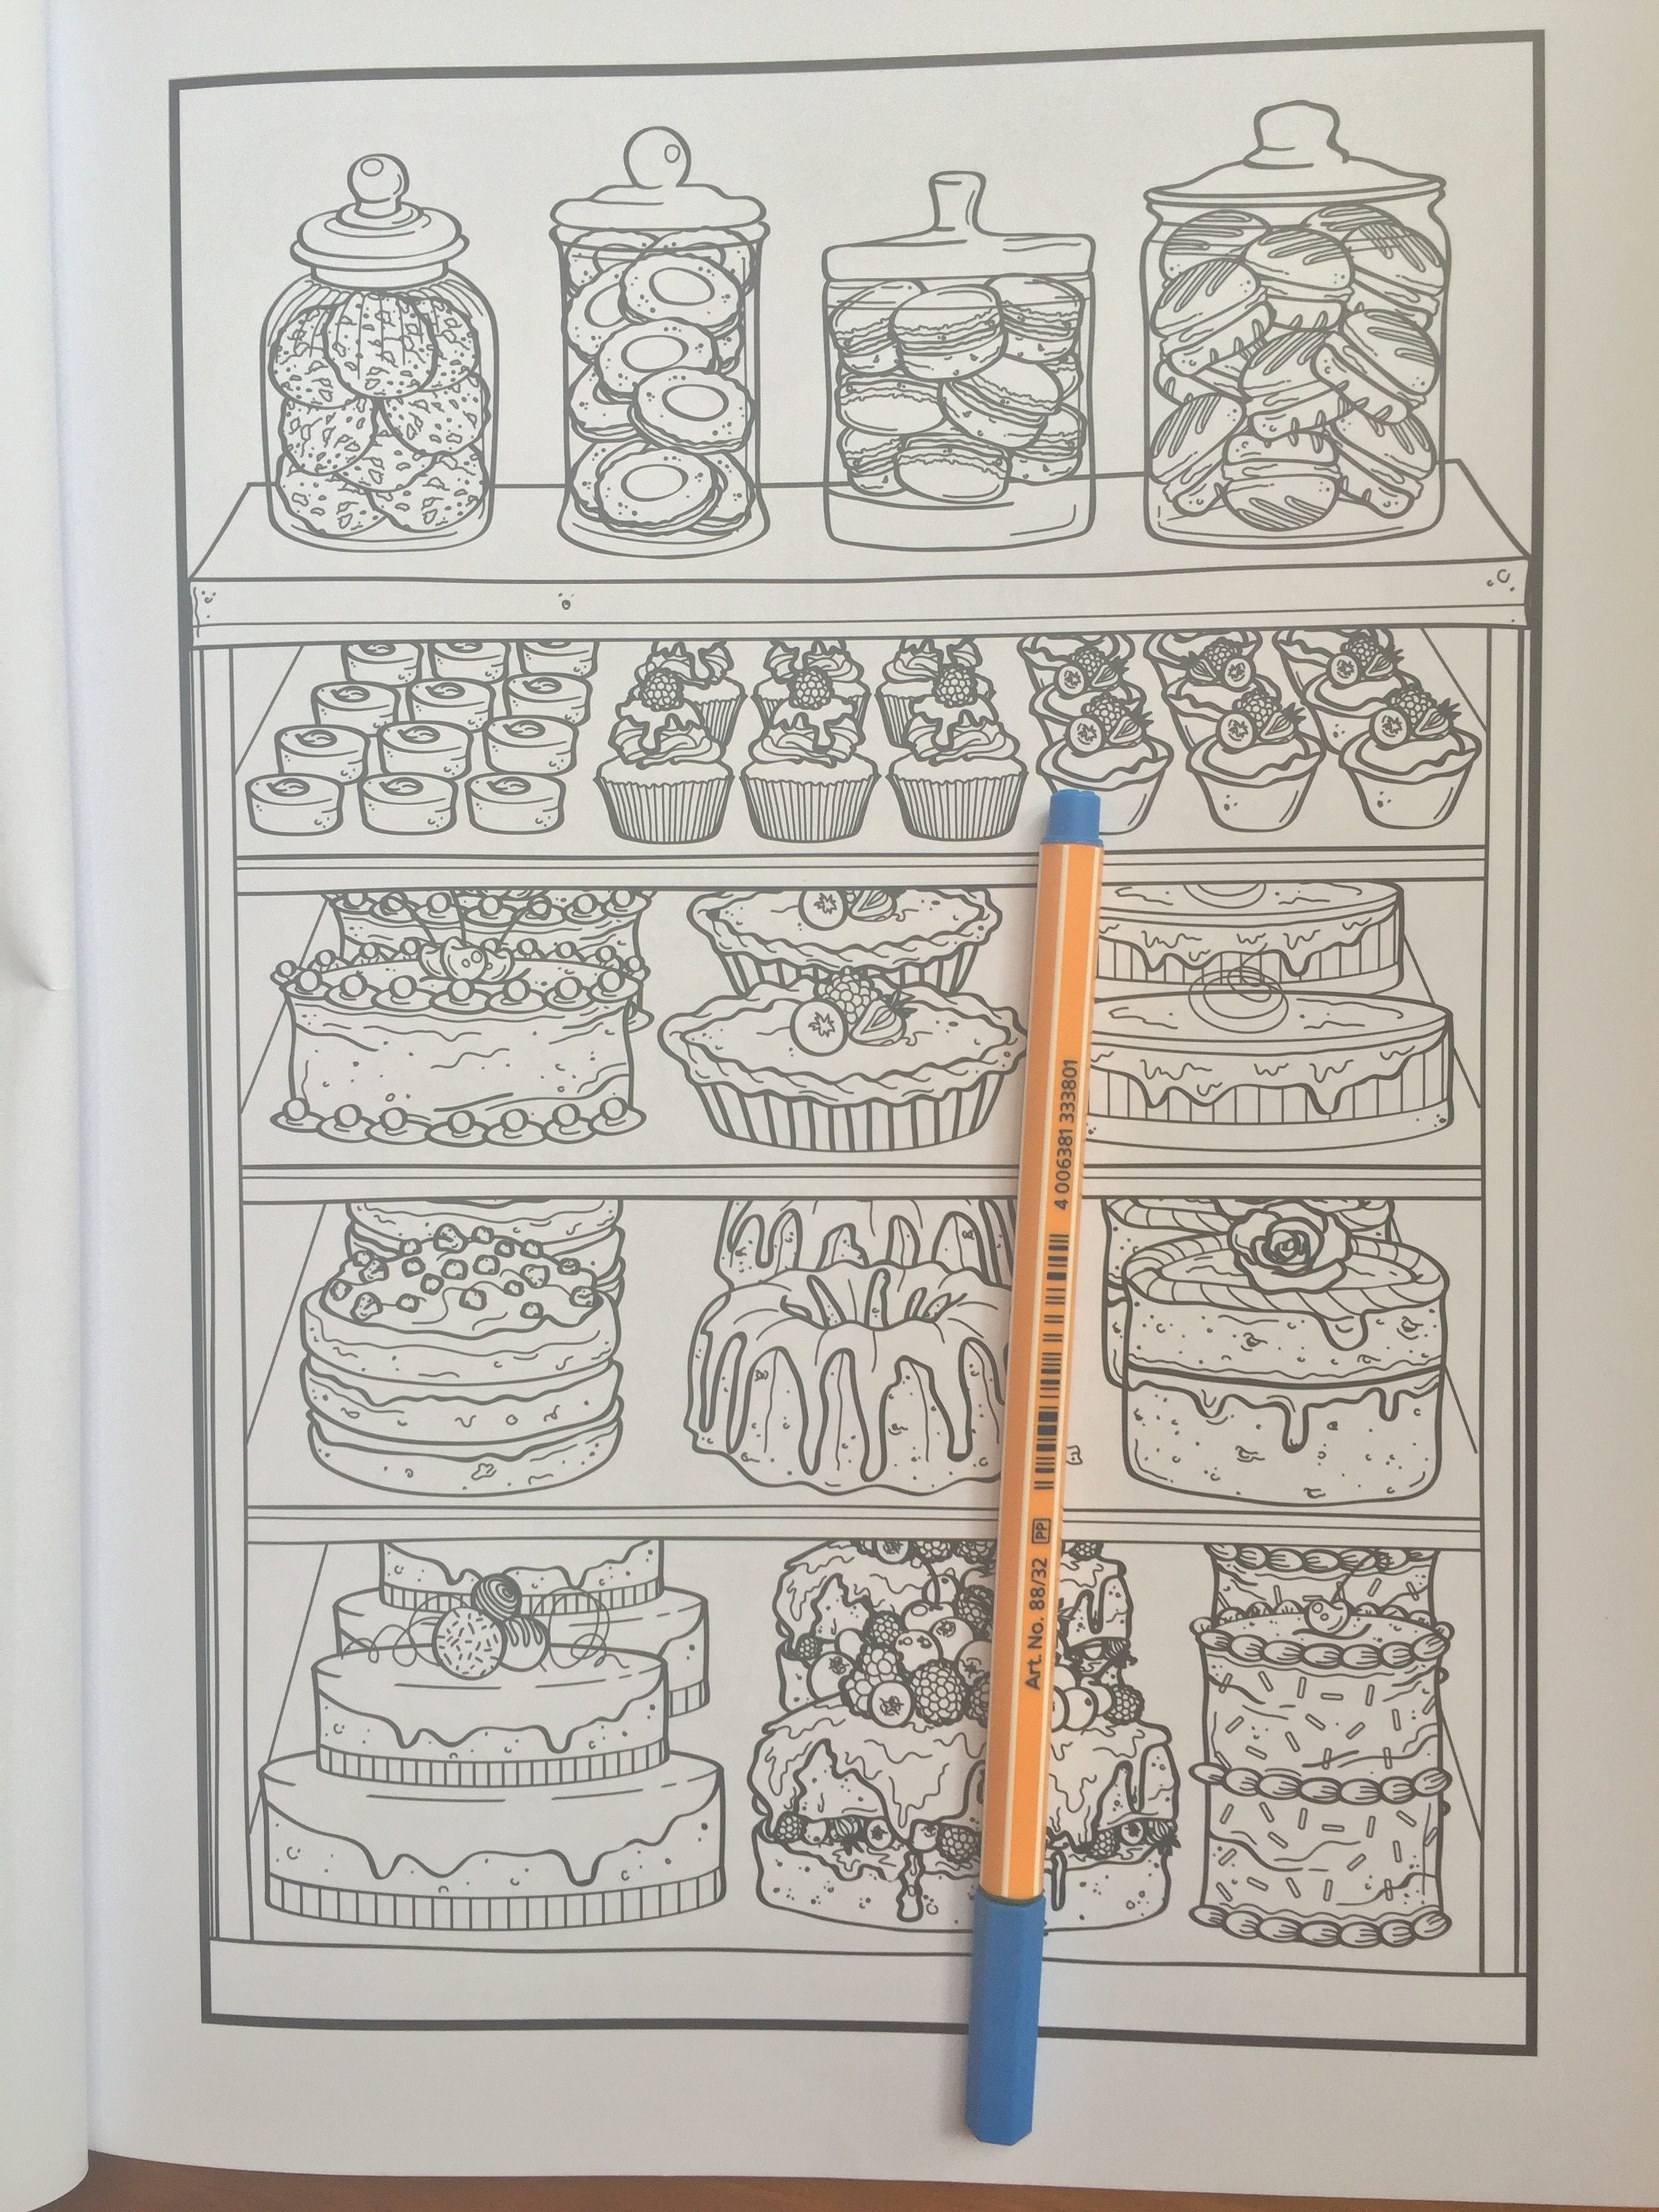 Anti stress coloring therapy - Colouring Coloring Adult Foodie Love Anti Stress Pencils Book Review Reviews Mindfulness Art Therapy